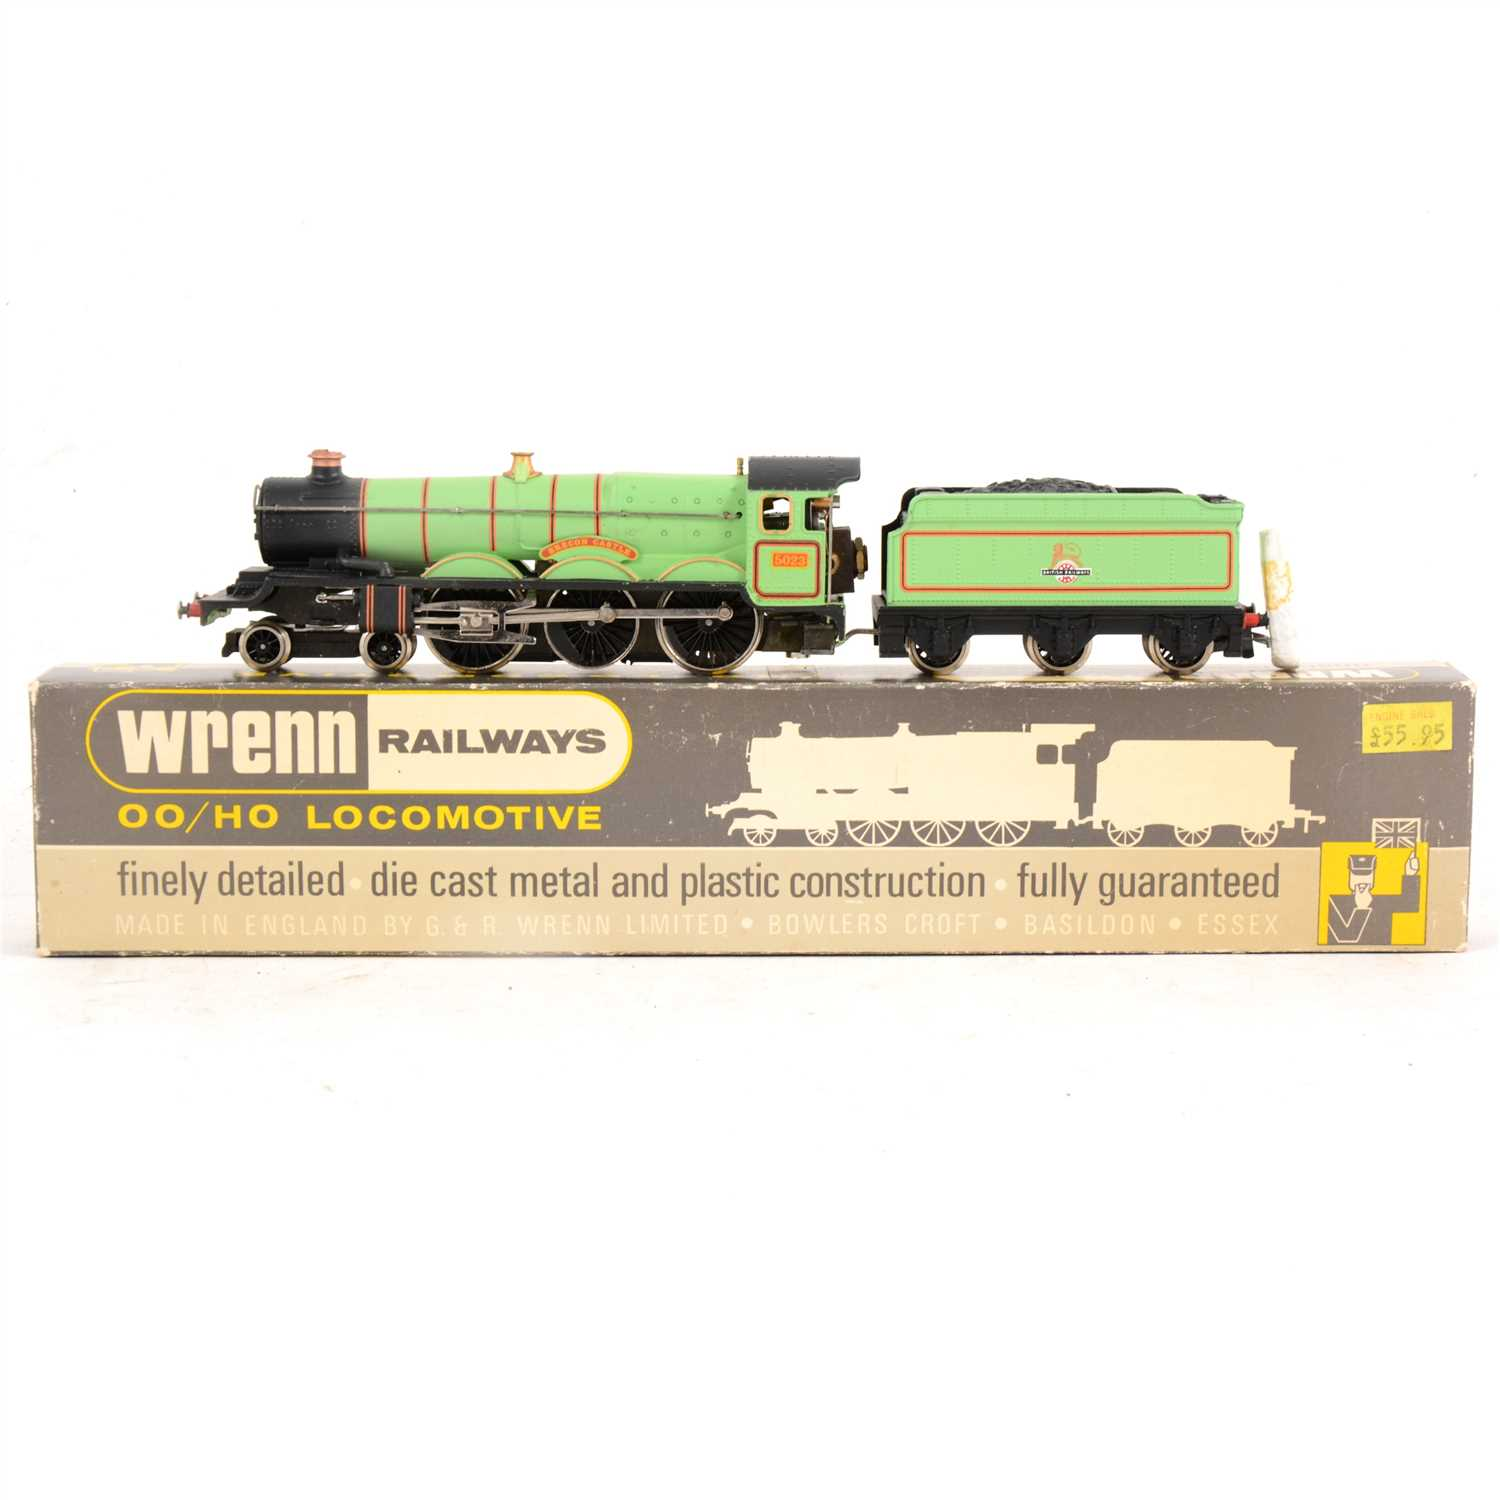 Toys, Memorabilia, & Model Railways